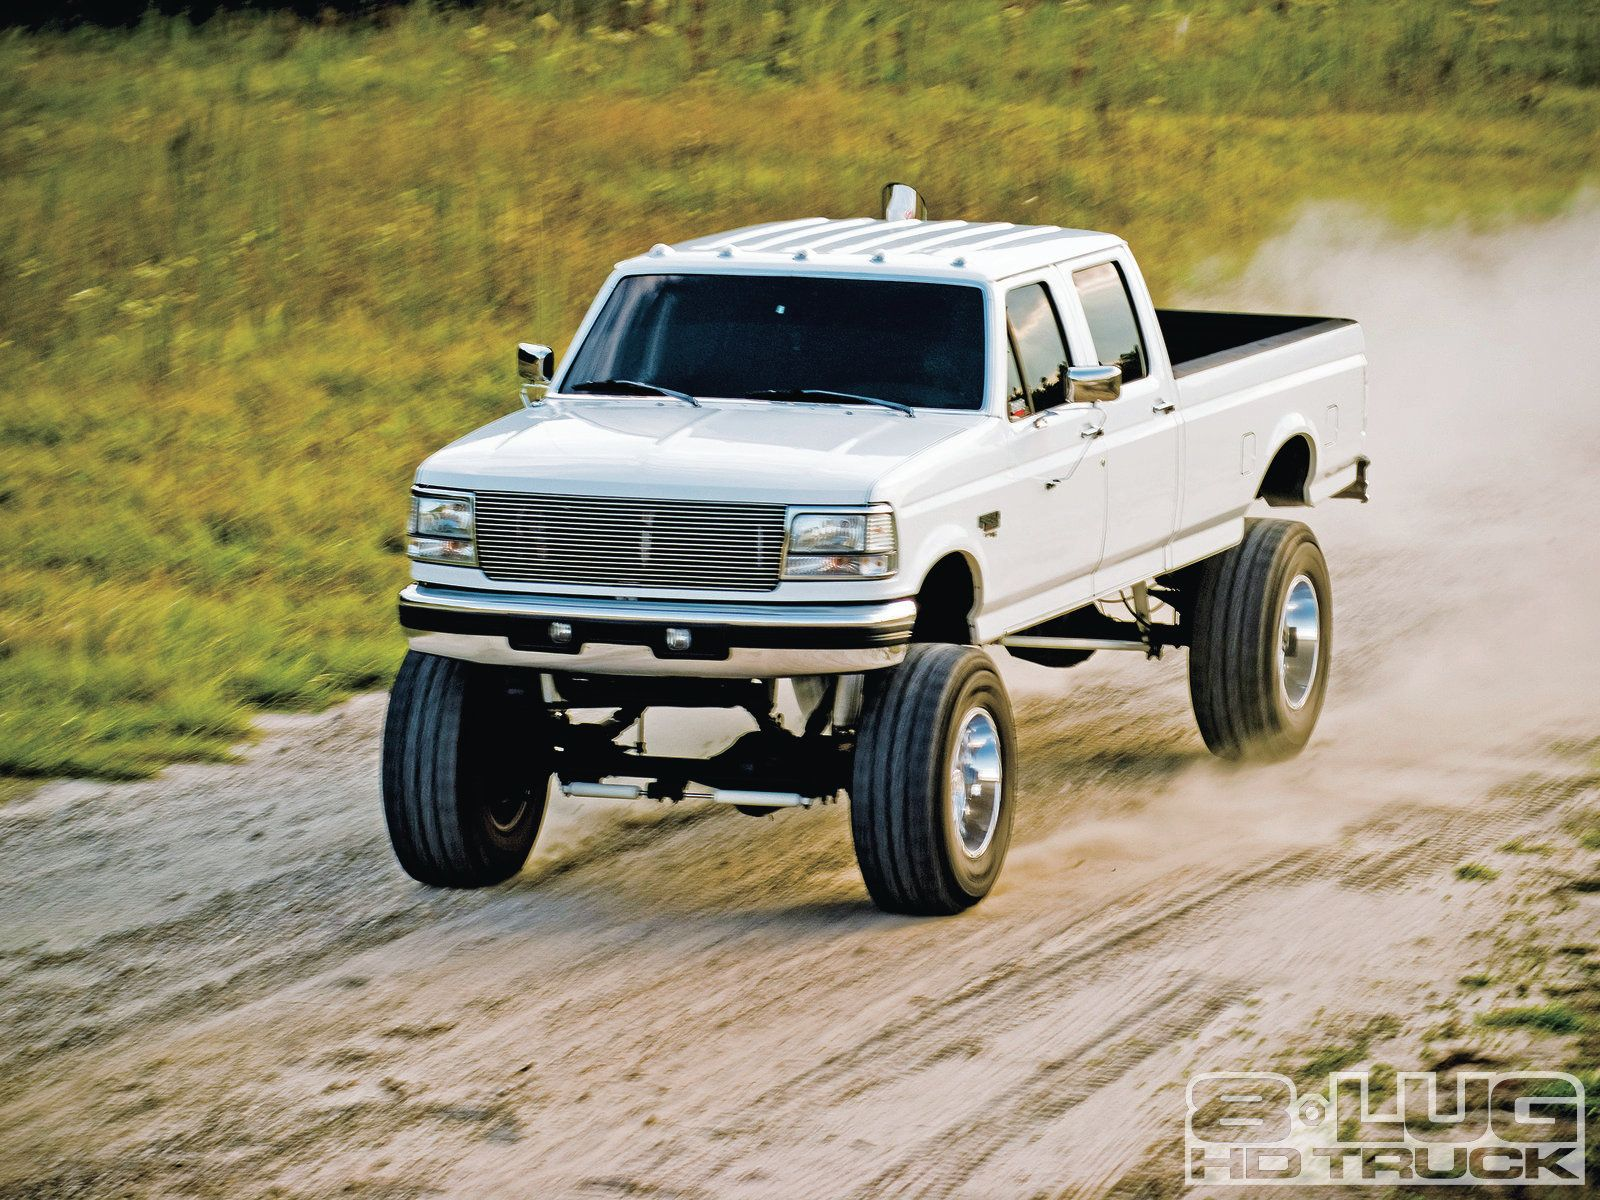 Still My Overall Favorite Body Style Of Ford 7 3 Powerstroke Crew